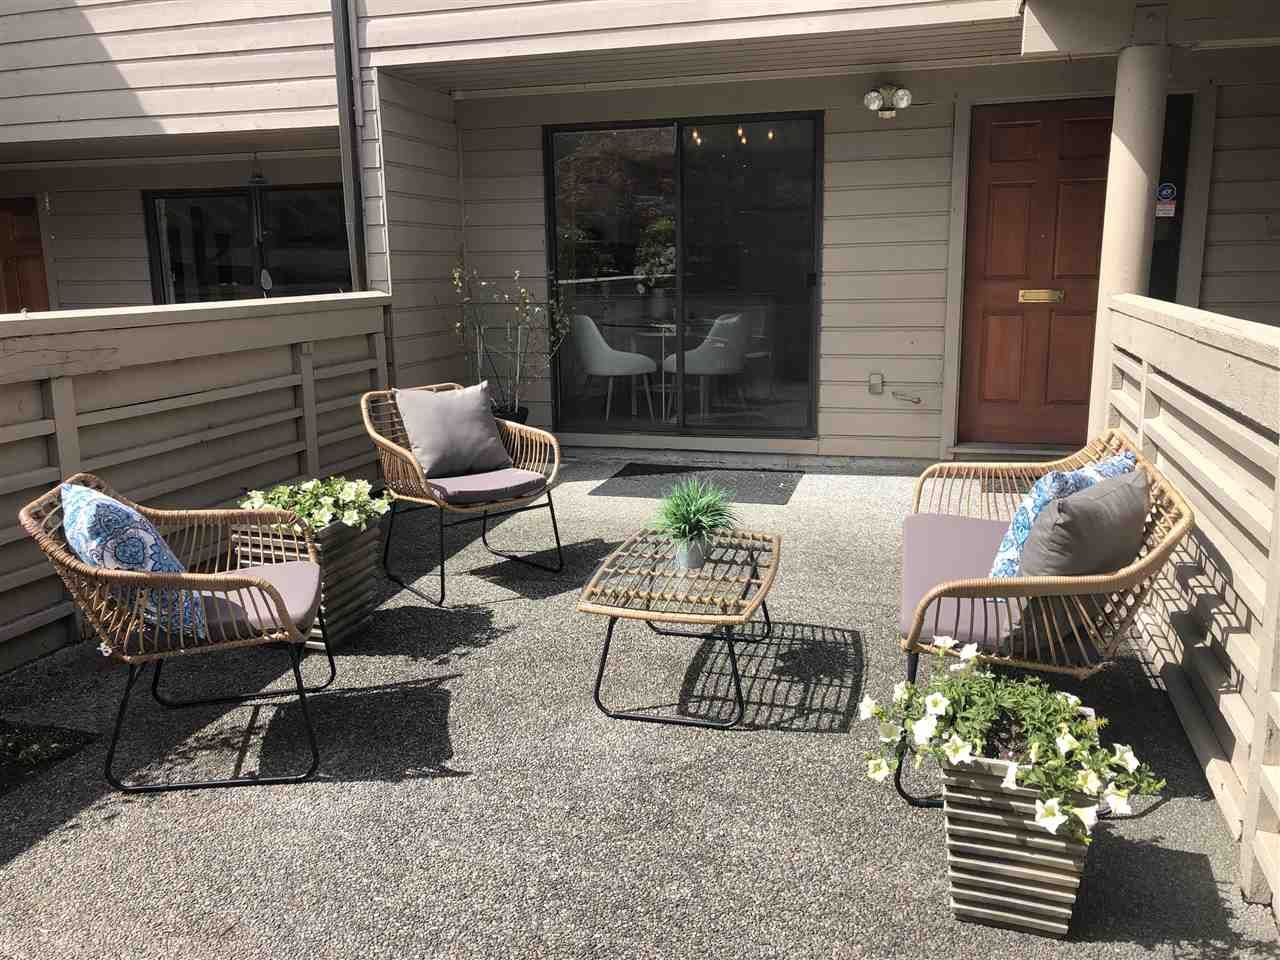 Photo 5: Photos: 2159 MCMULLEN Avenue in Vancouver: Quilchena Townhouse for sale (Vancouver West)  : MLS®# R2455599